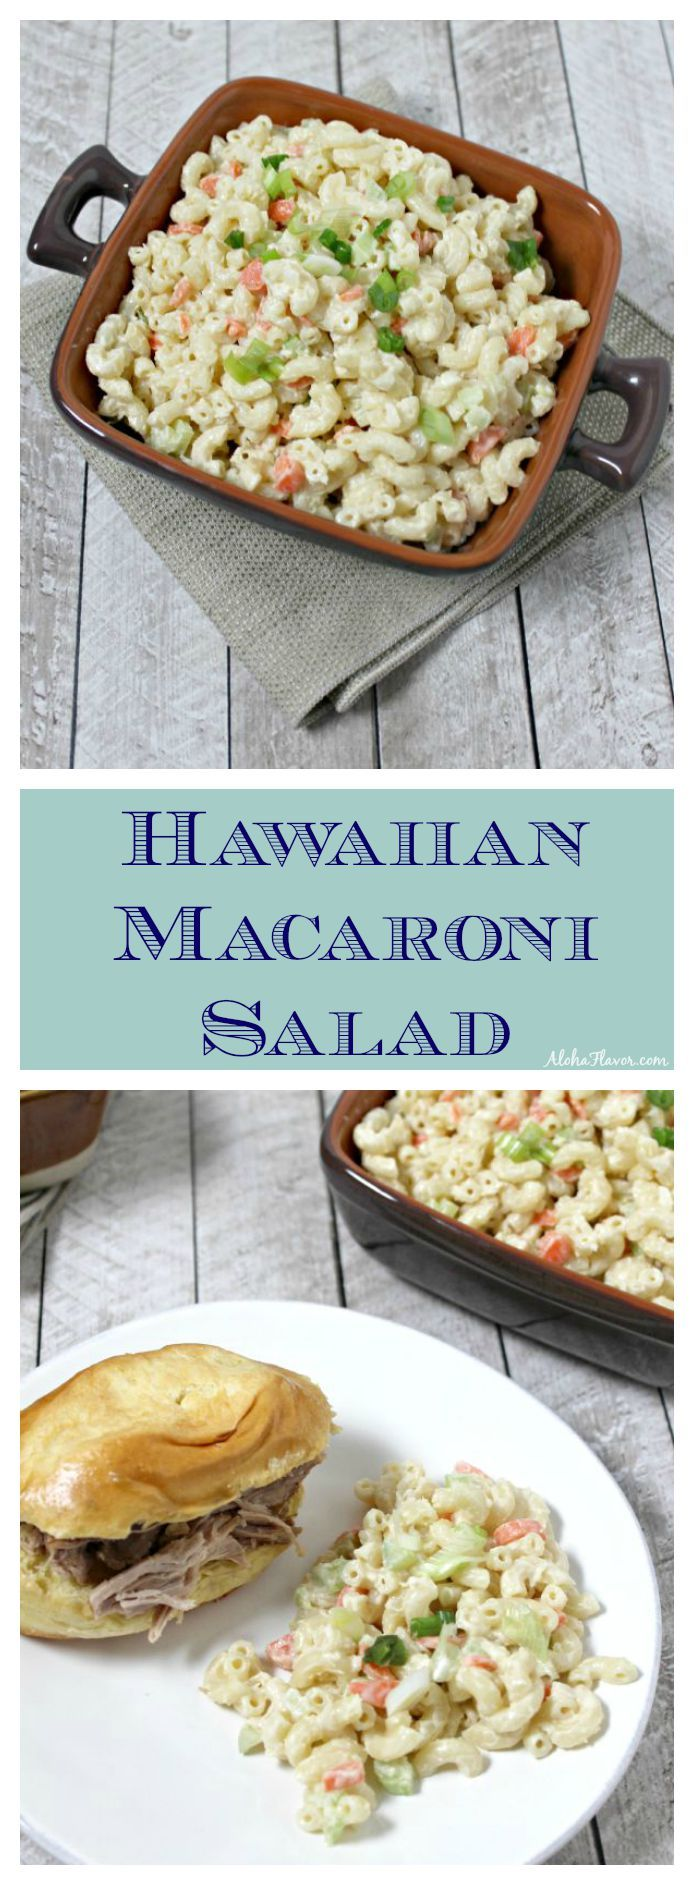 For any plate lunch or luau, Hawaiian Macaroni Salad is a must. Fresh veggies, perfectly cooked pasta and a sweet & tangy dressing make the perfect mac salad | Aloha Flavor ~ http://alohaflavor.com